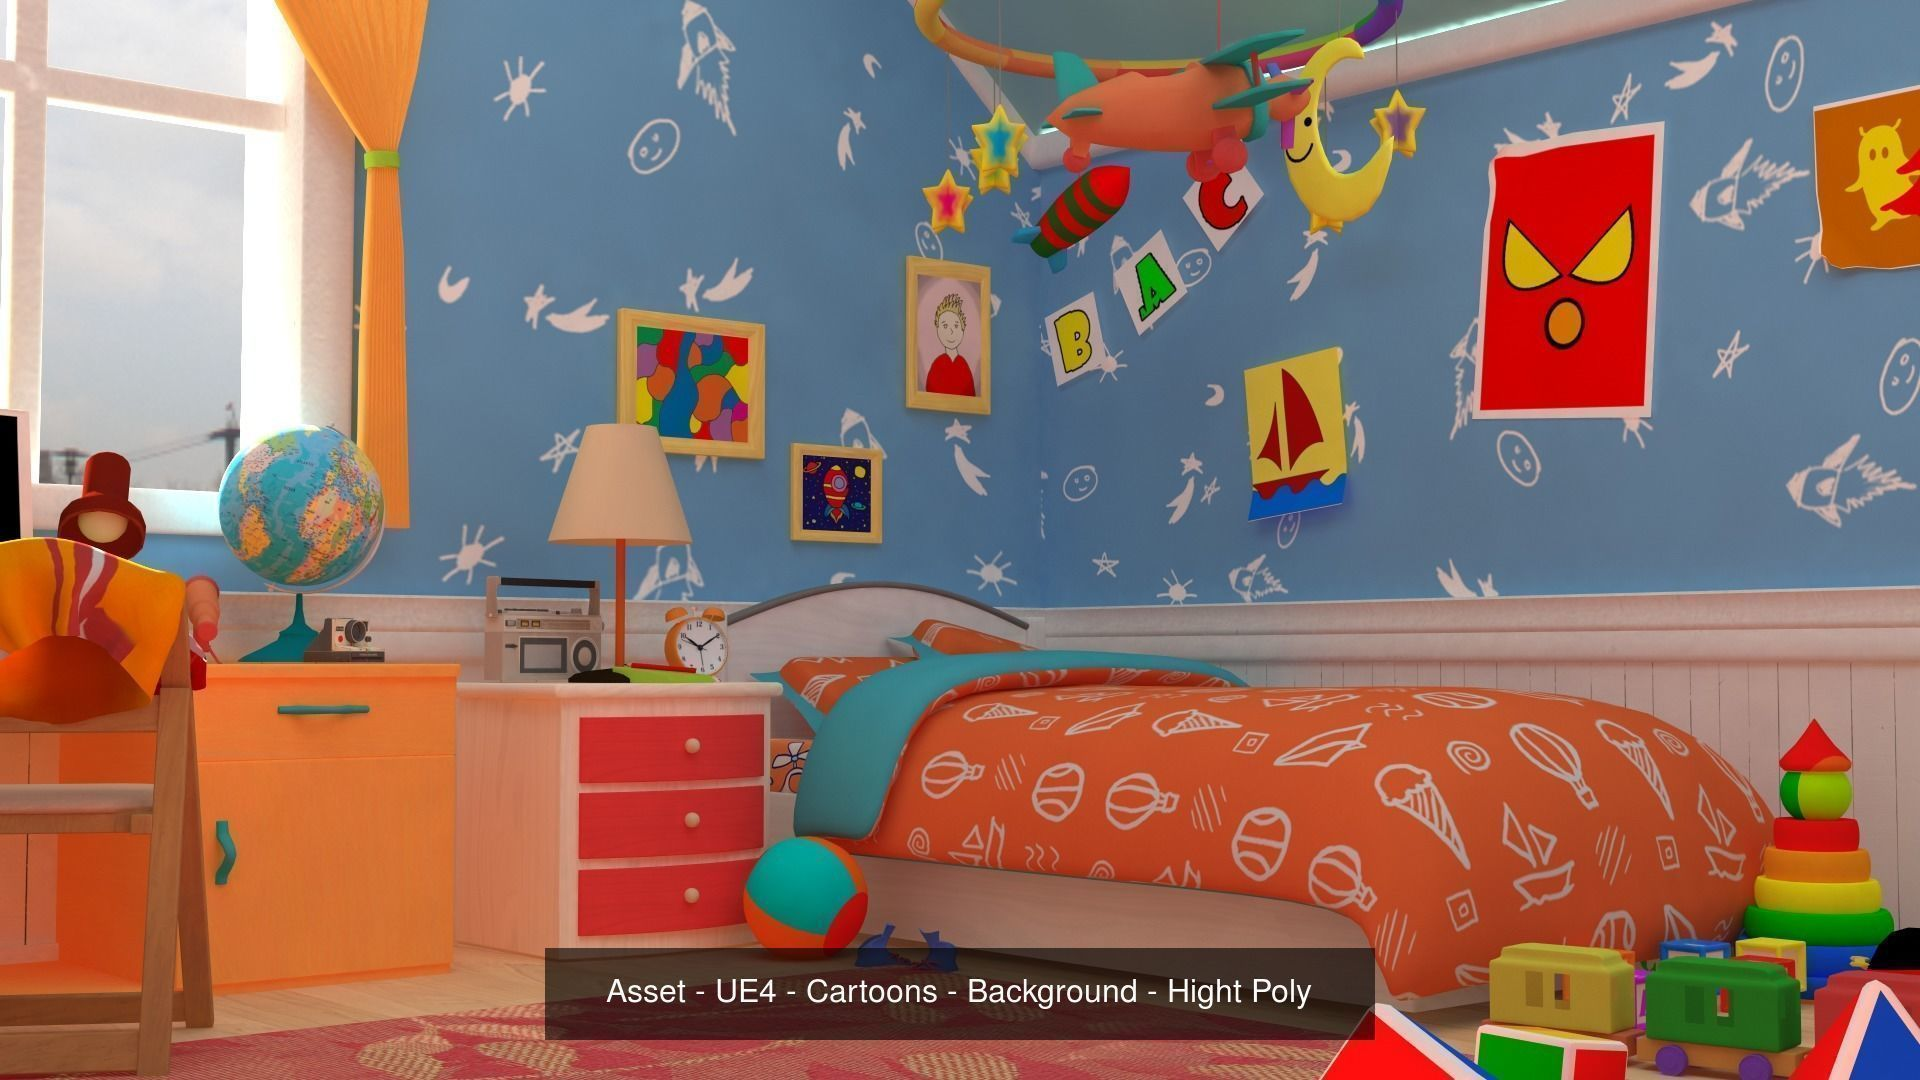 Asset - Cartoons - Background 04 - Hight Poly